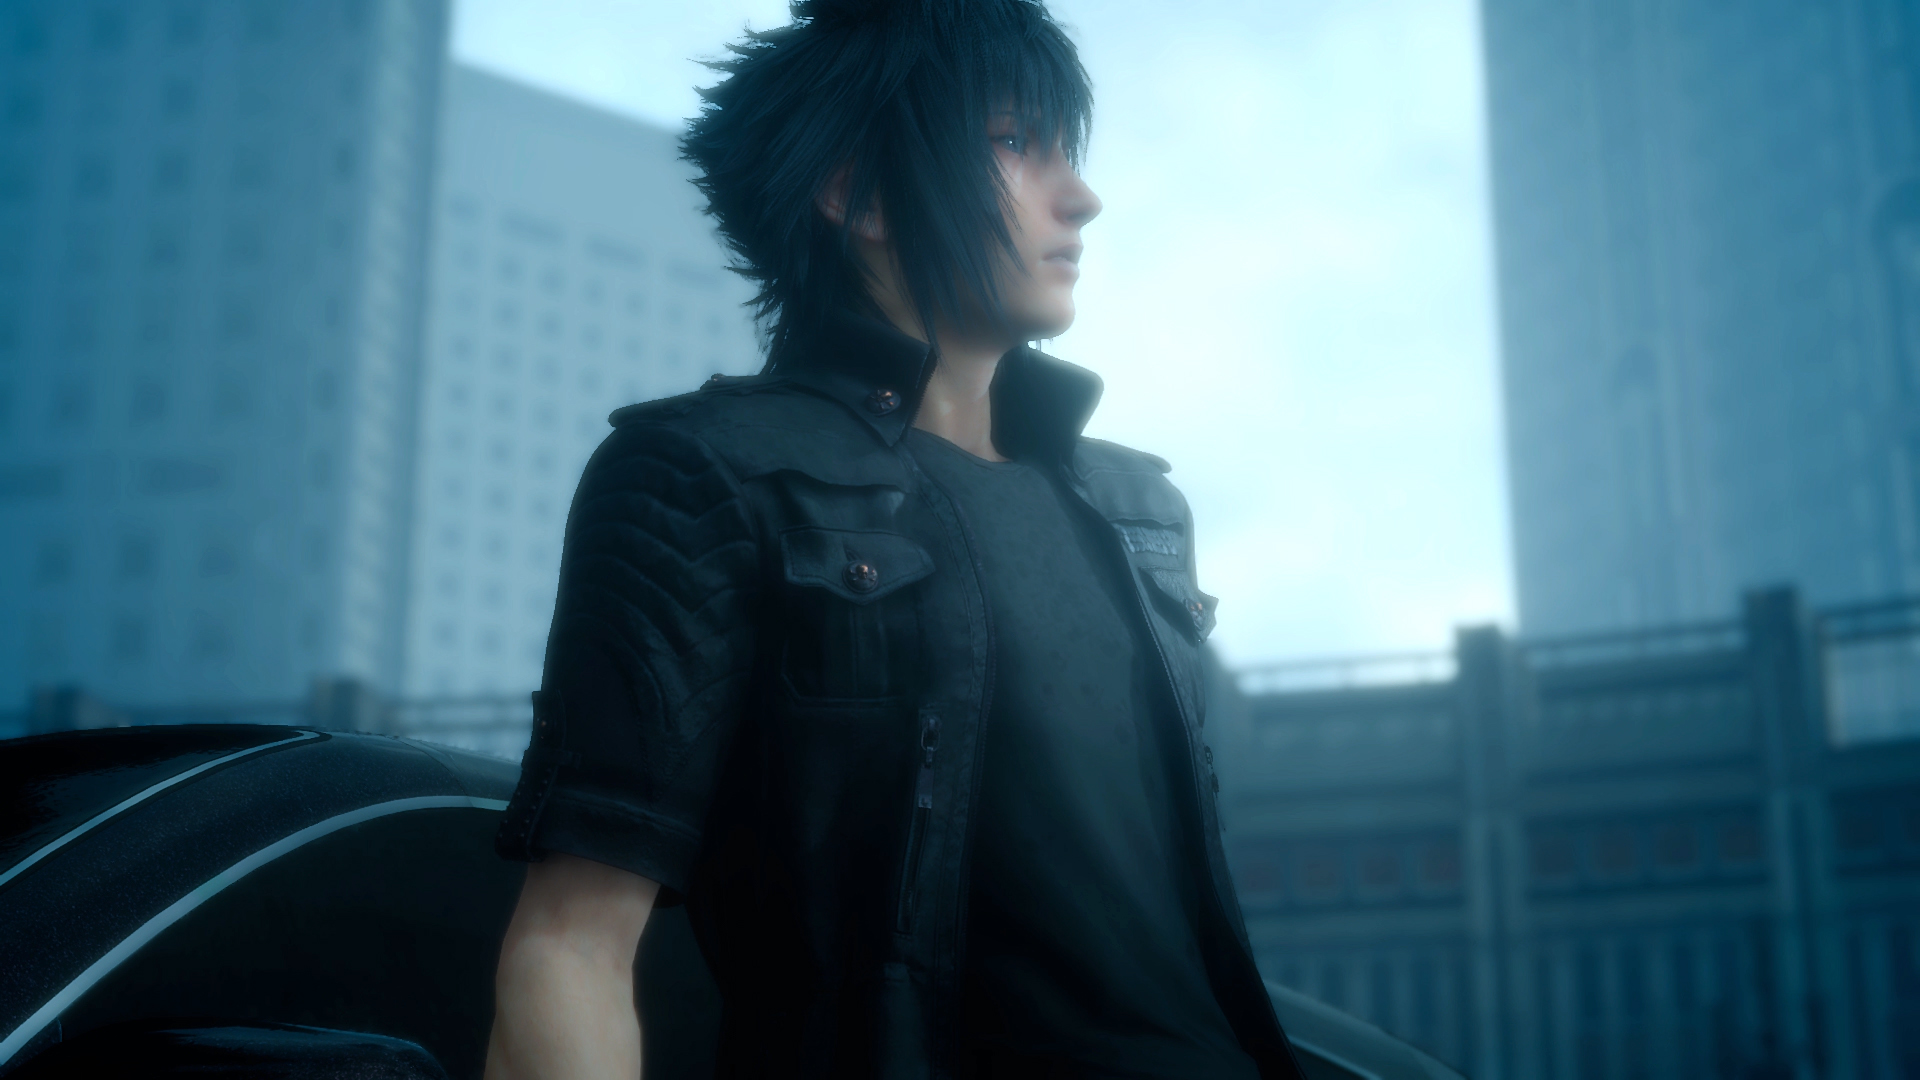 Insight on Transition Between Final Fantasy Versus XIII and